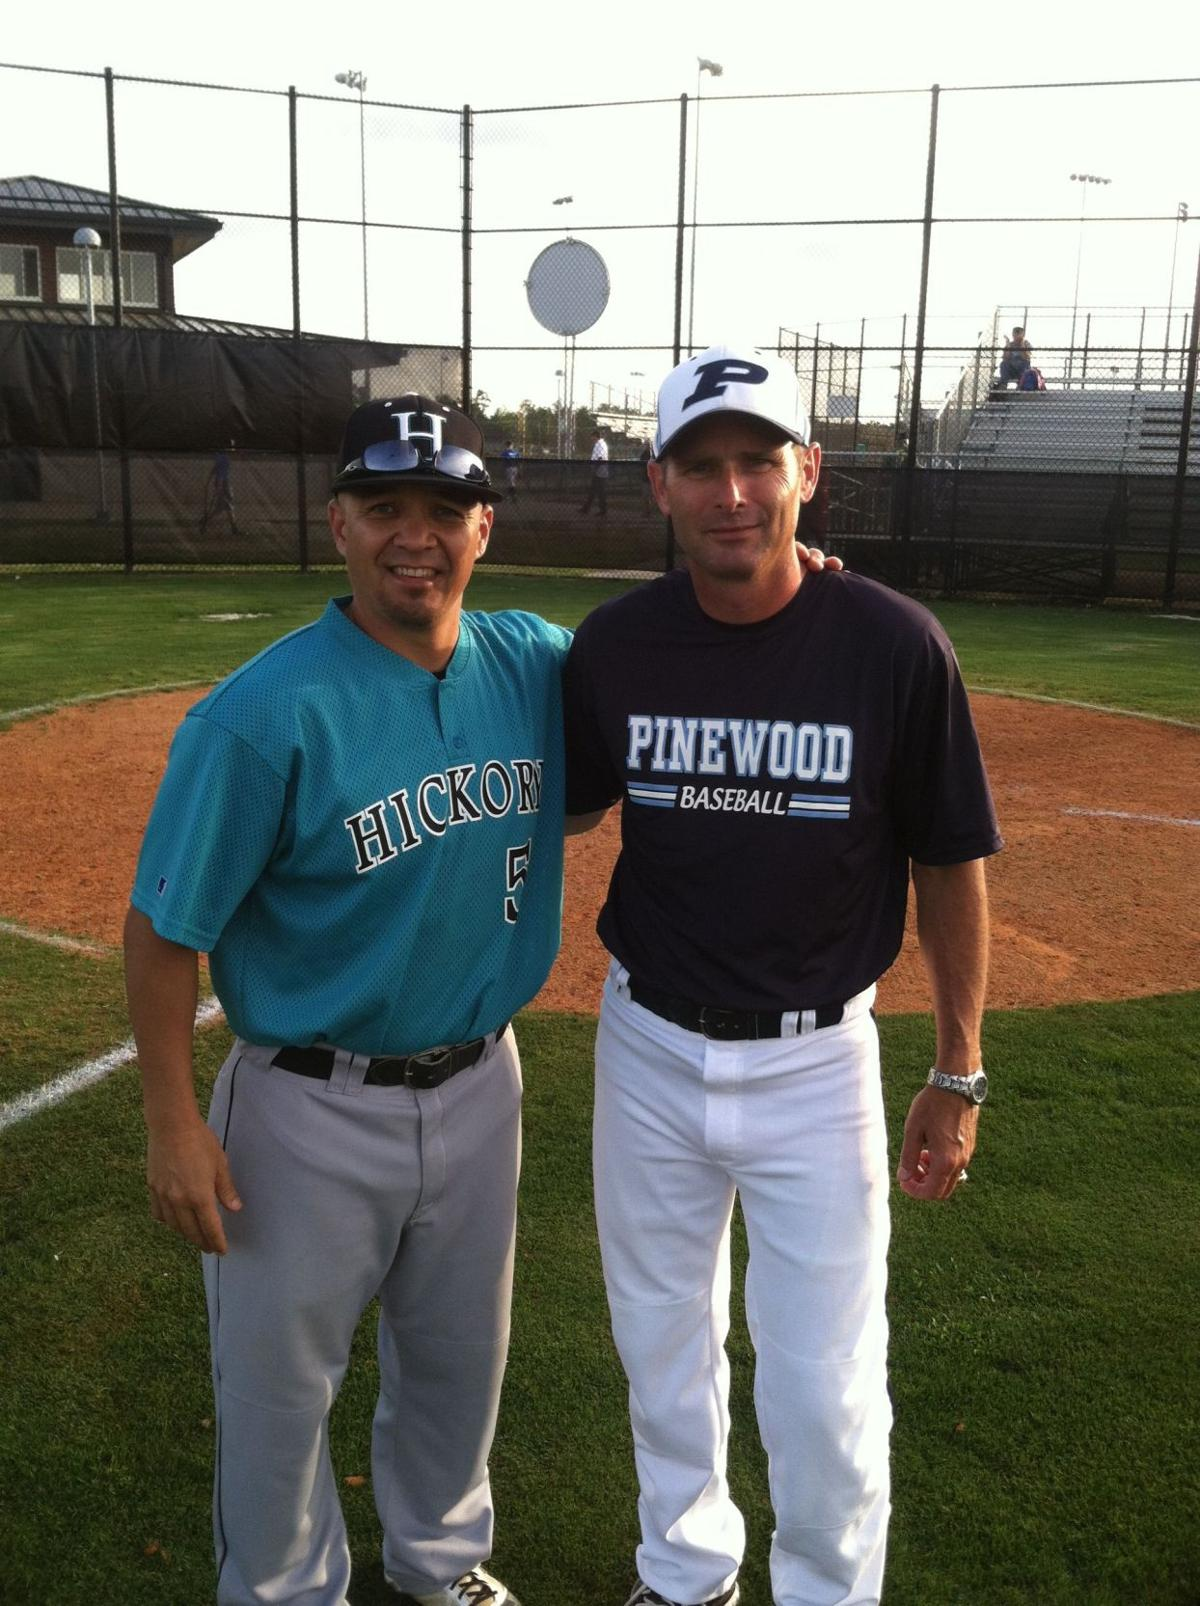 Former Citadel teammates reunited as opposing coaches in HIT